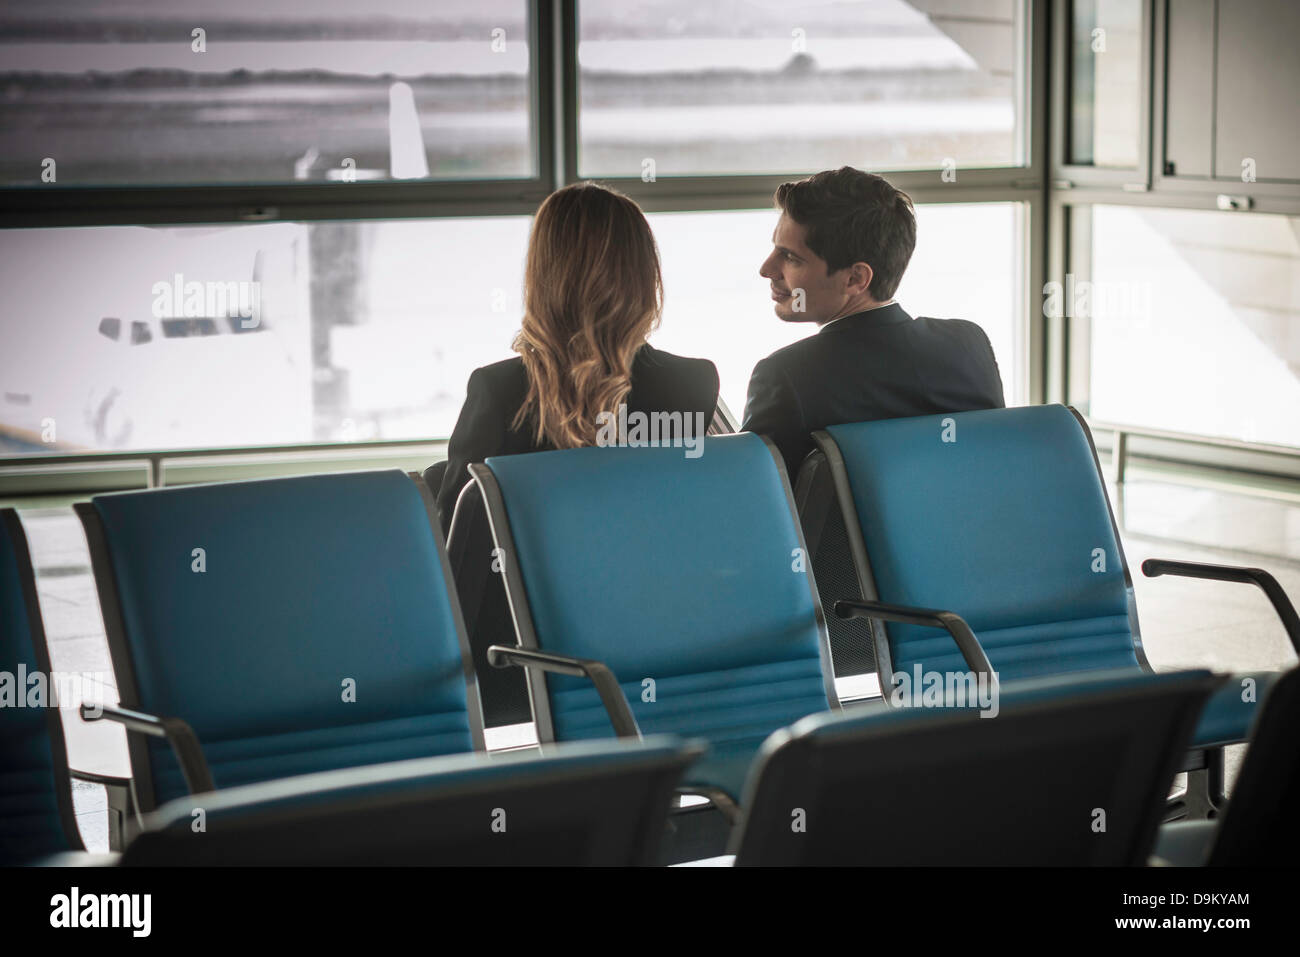 Businesspeople waiting in airport departure lounge - Stock Image